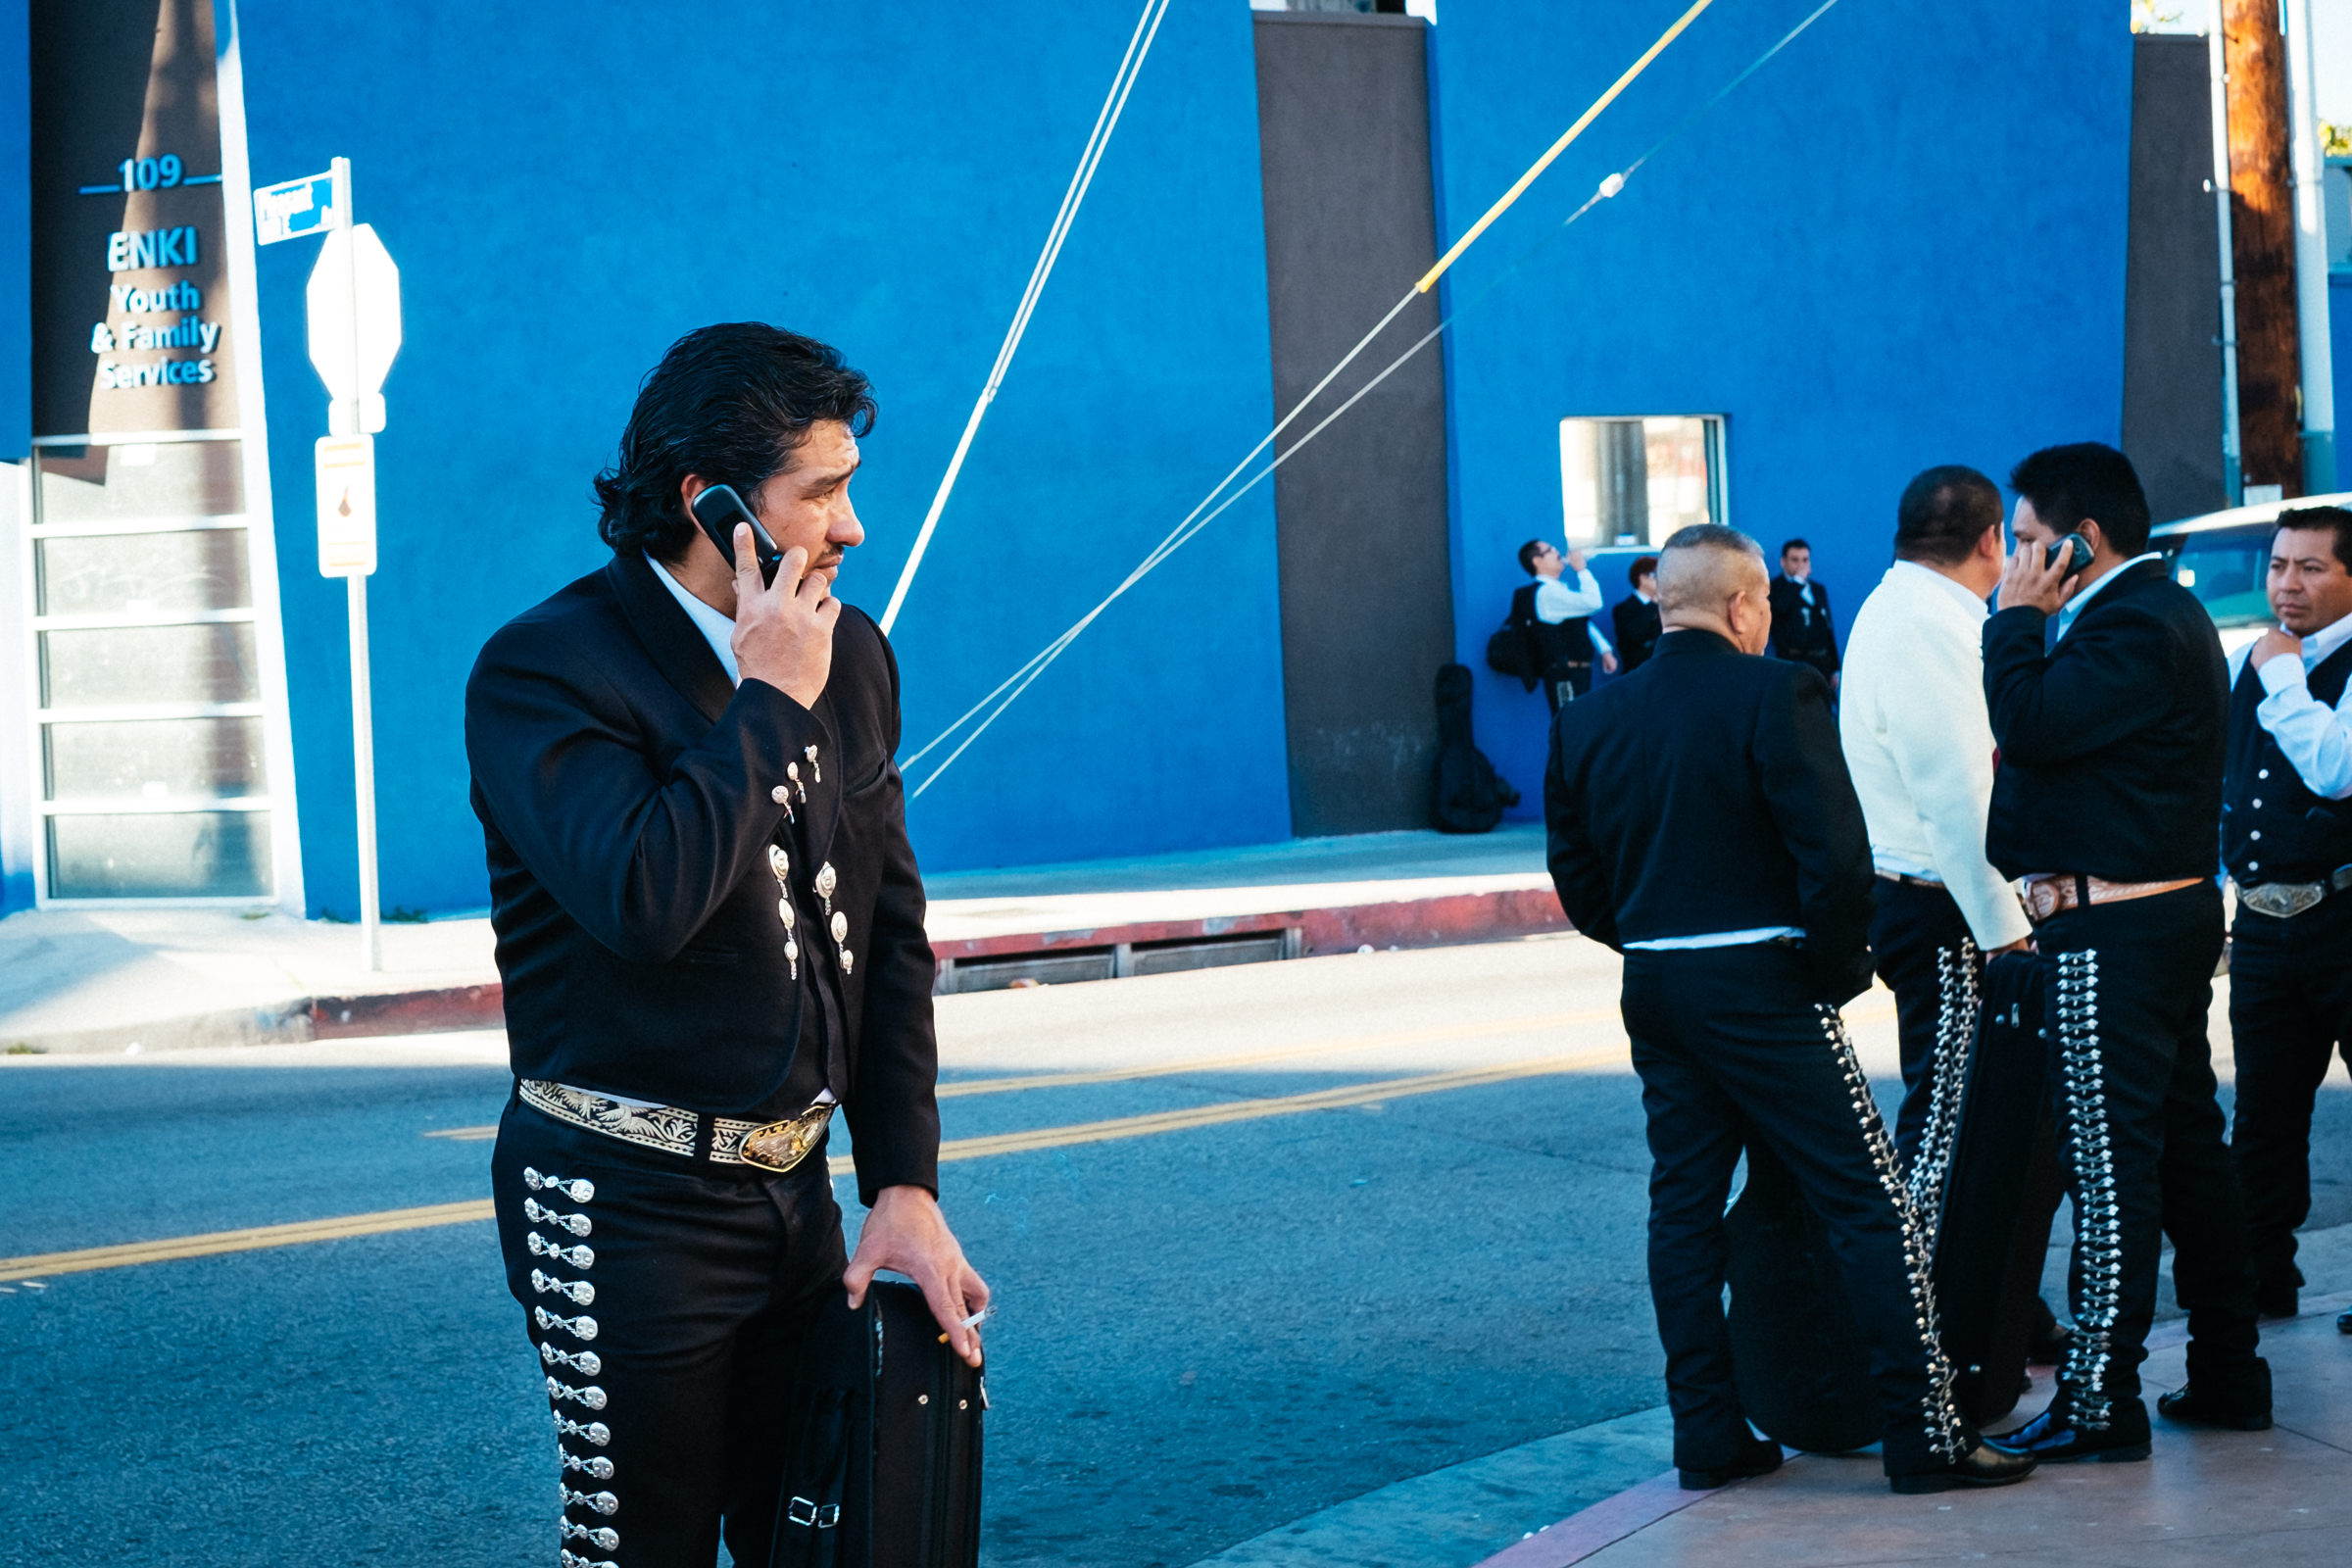 Boyle Heights Mariachi talking on the phone